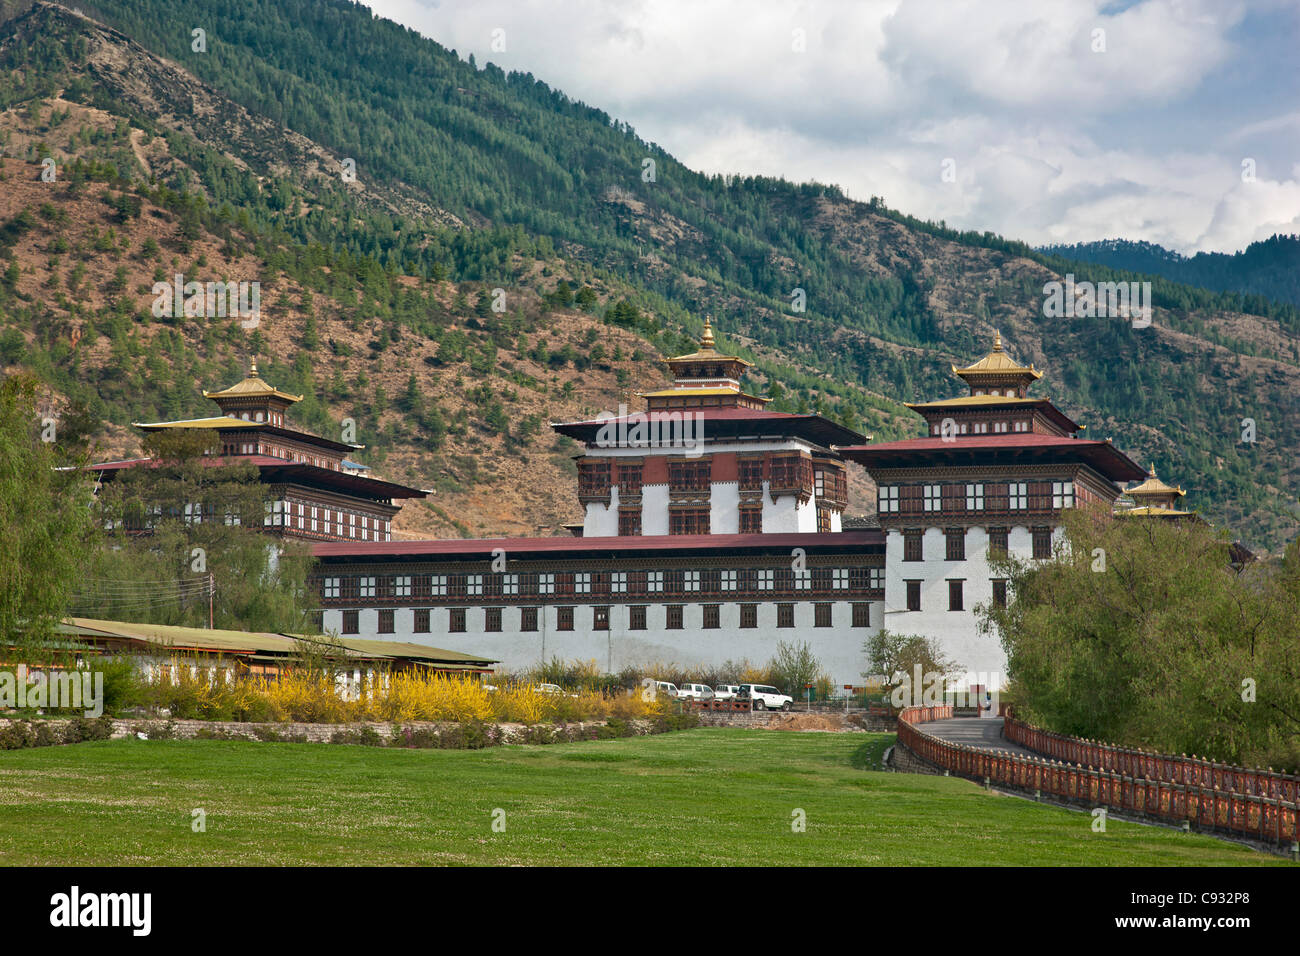 The very large Trashi Chhoe Dzong was built in the 17th & 18th century in Thimphu. - Stock Image